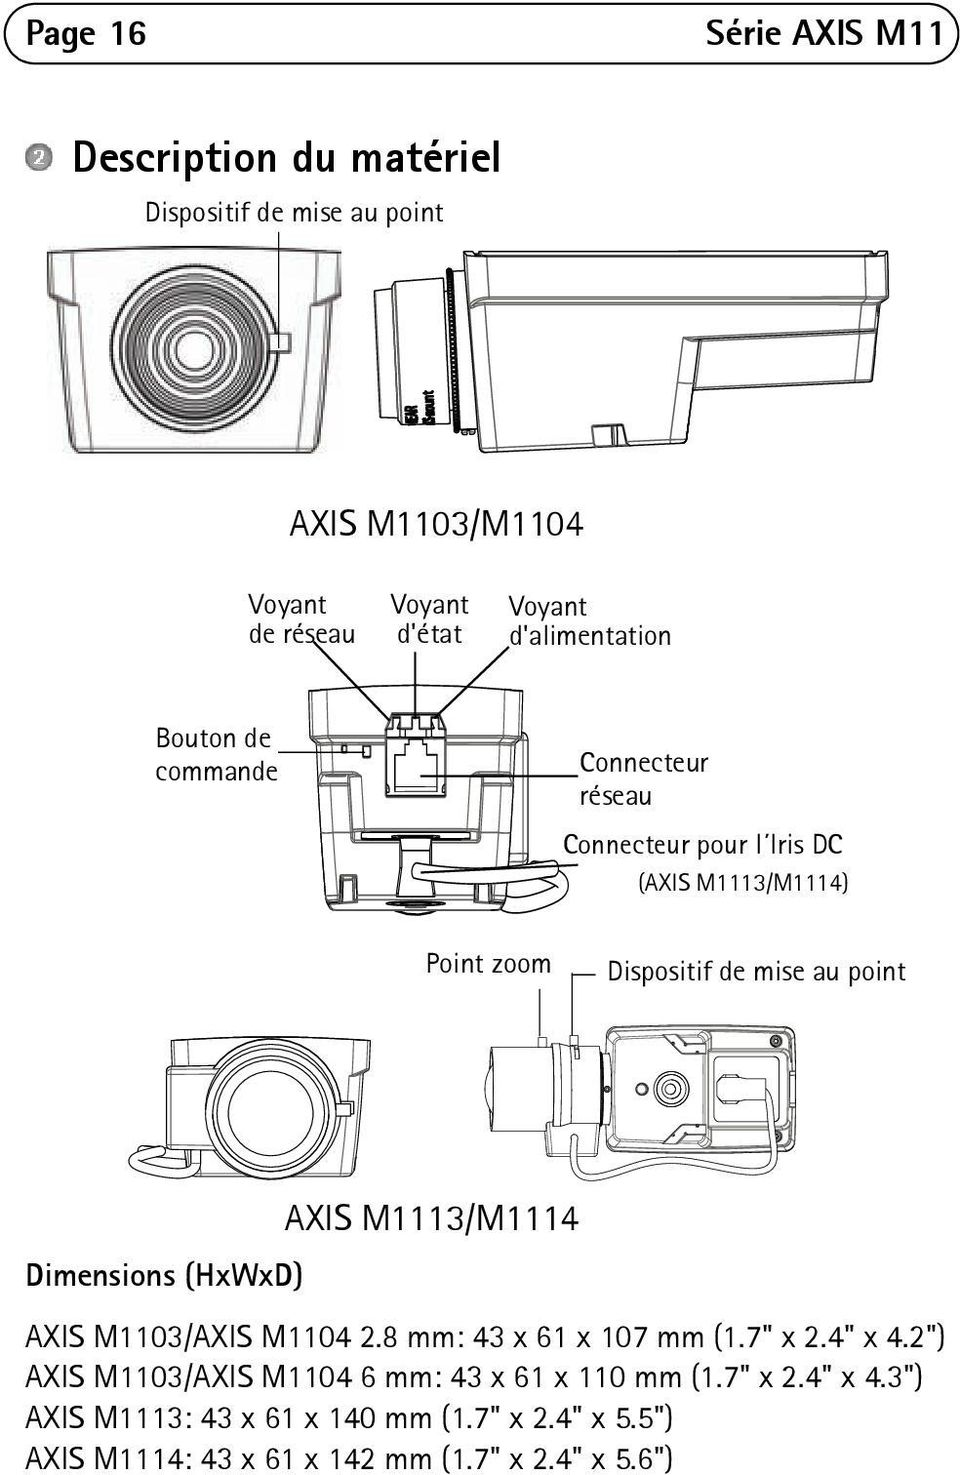 "point AXIS M1113/M1114 Dimensions (HxWxD) AXIS M1103/AXIS M1104 2.8 mm: 43 x 61 x 107 mm (1.7"" x 2.4"" x 4."